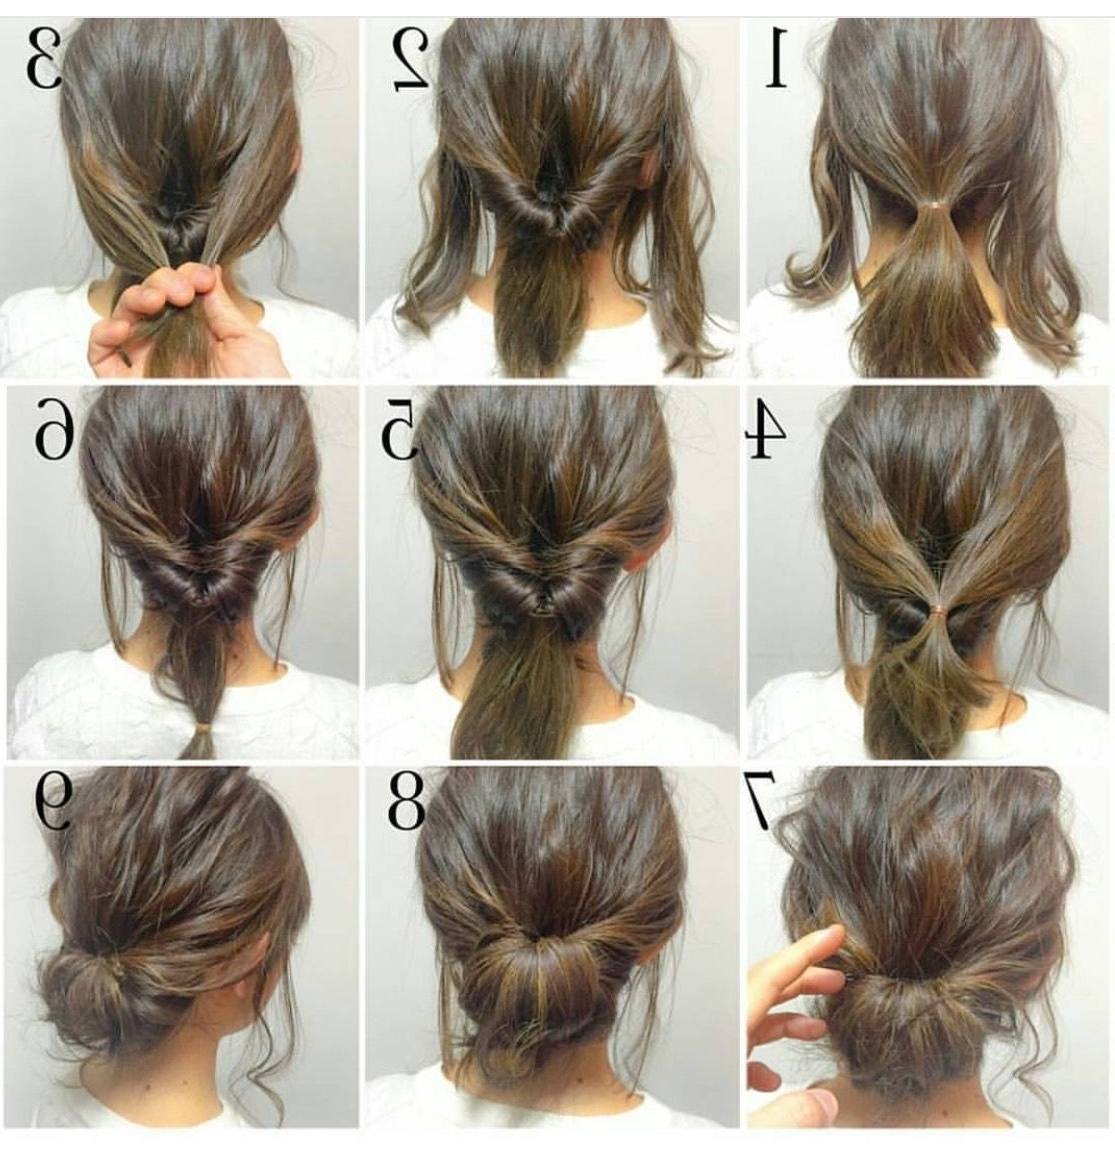 4 Messy Updos For Long Hair | Hairz | Pinterest | Updos, Hair Style With Messy Hair Updo Hairstyles For Long Hair (View 5 of 15)